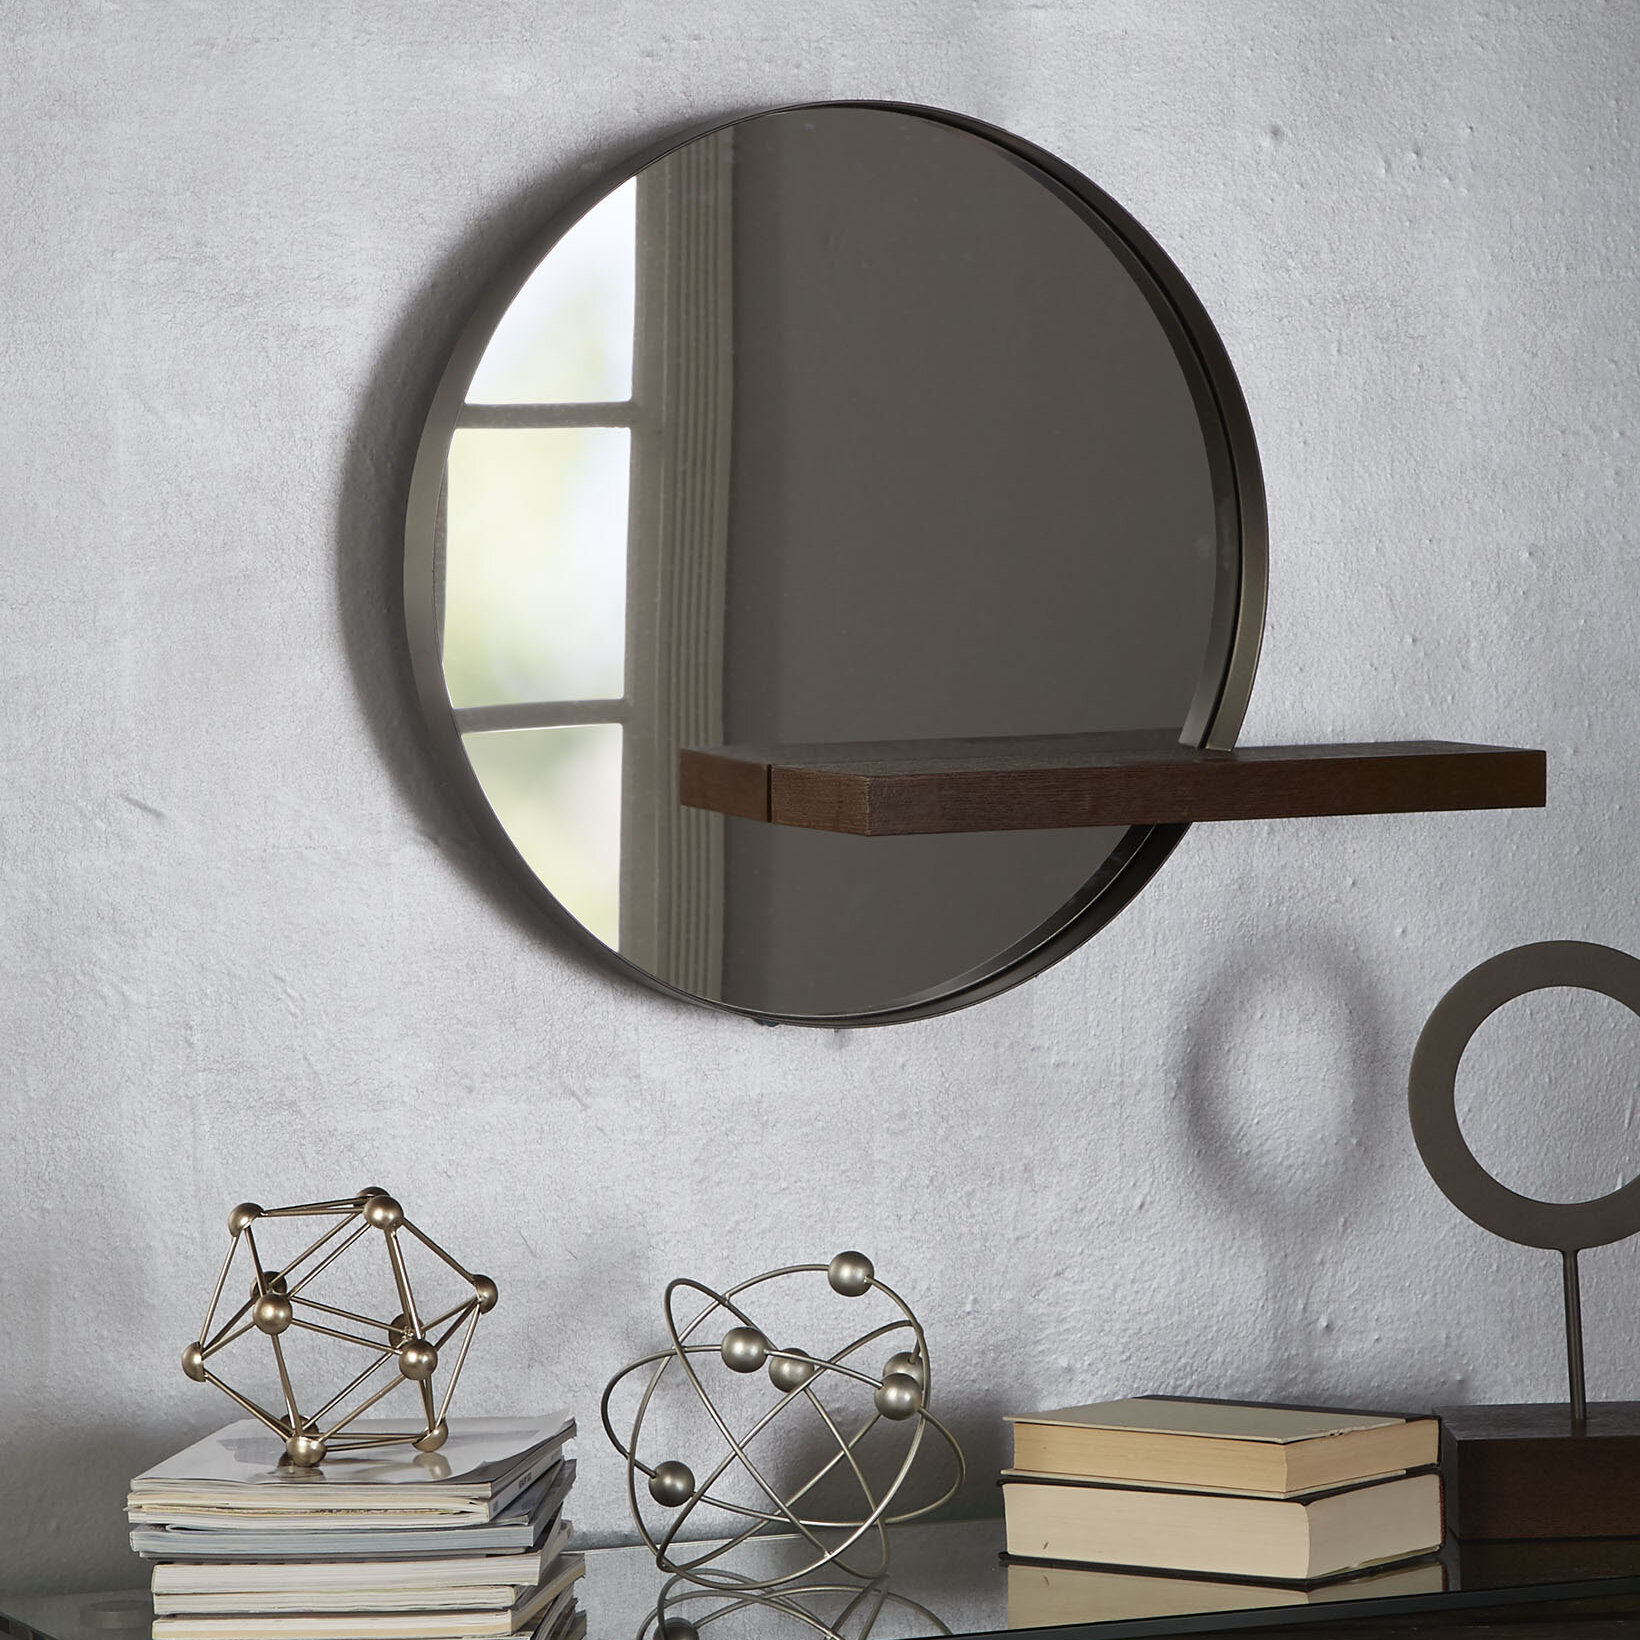 Seibert Round With Shelves Accent Mirror Inside Yatendra Cottage/country Beveled Accent Mirrors (View 20 of 20)